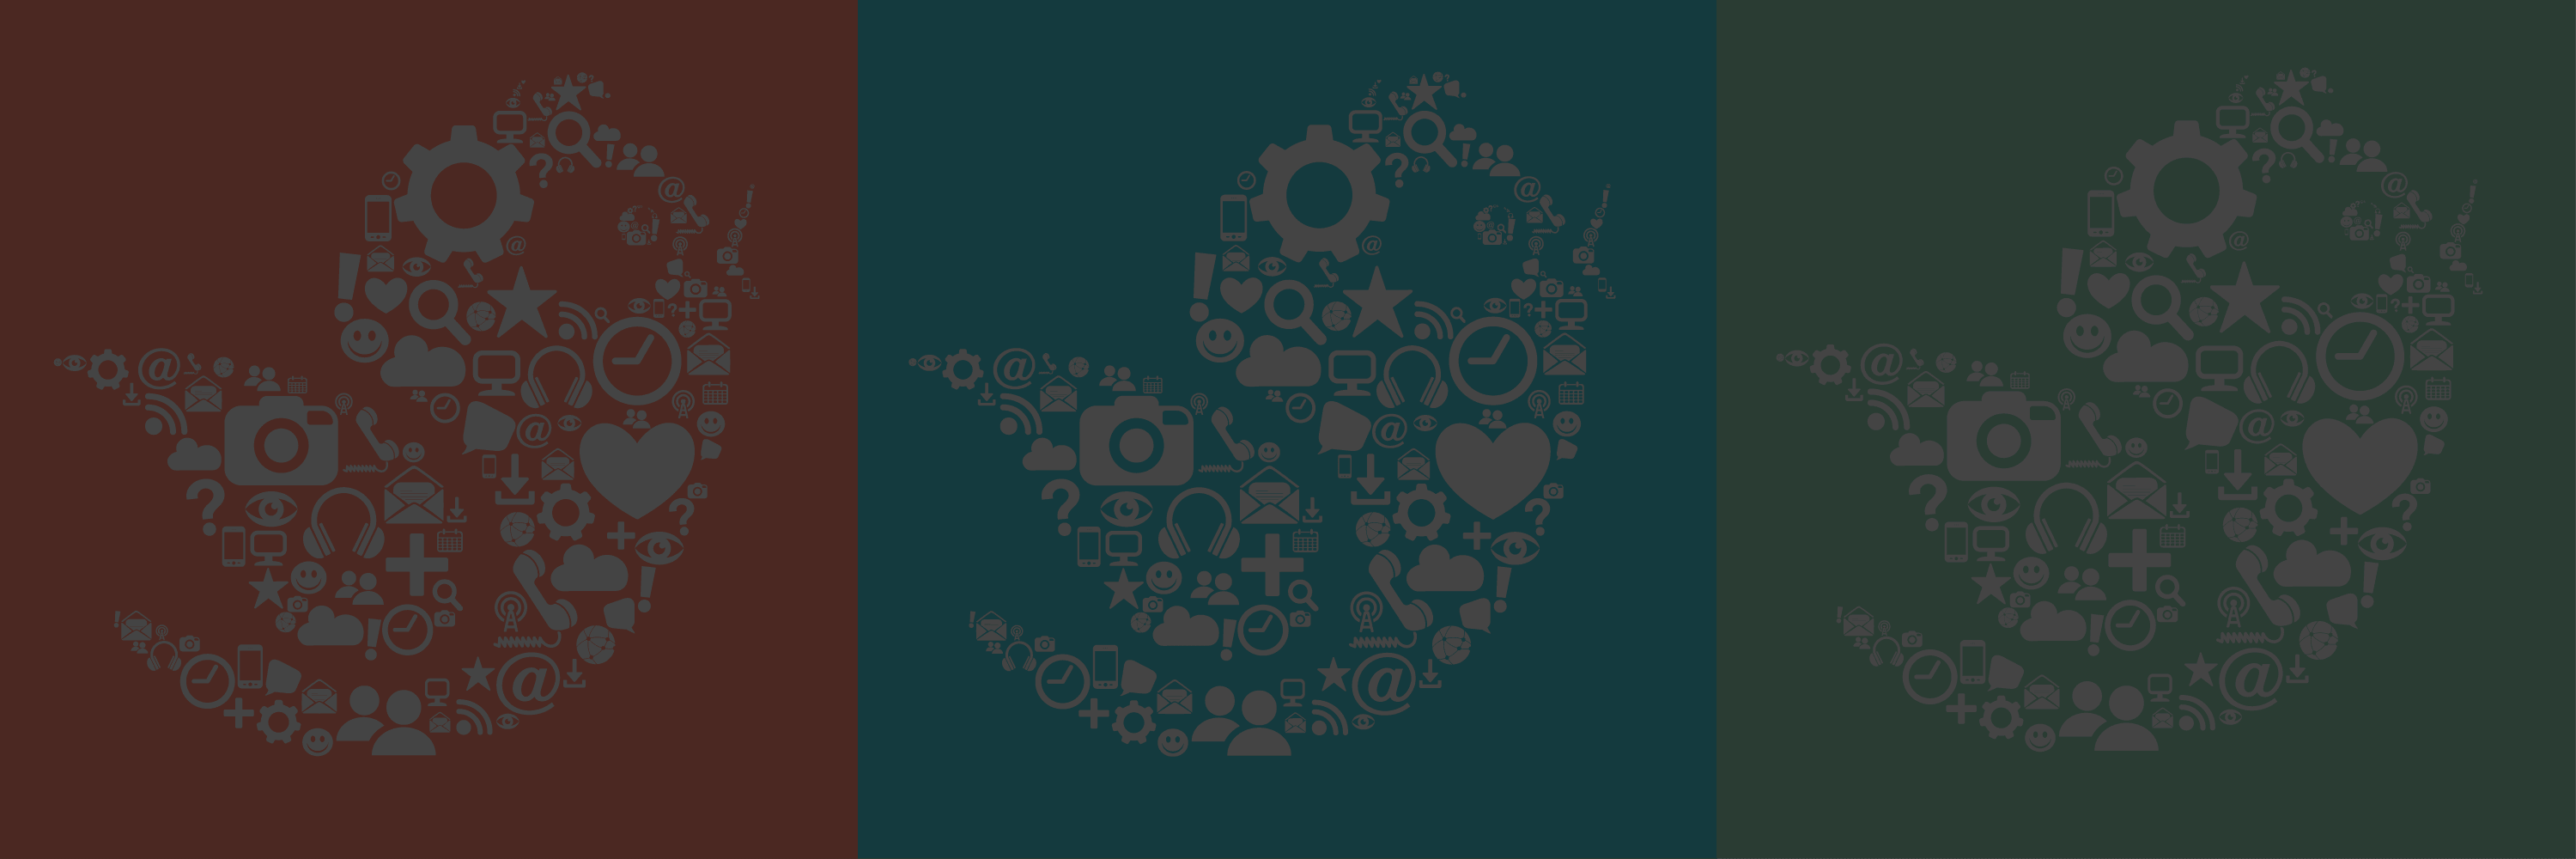 Twitter marketing tips & best practices